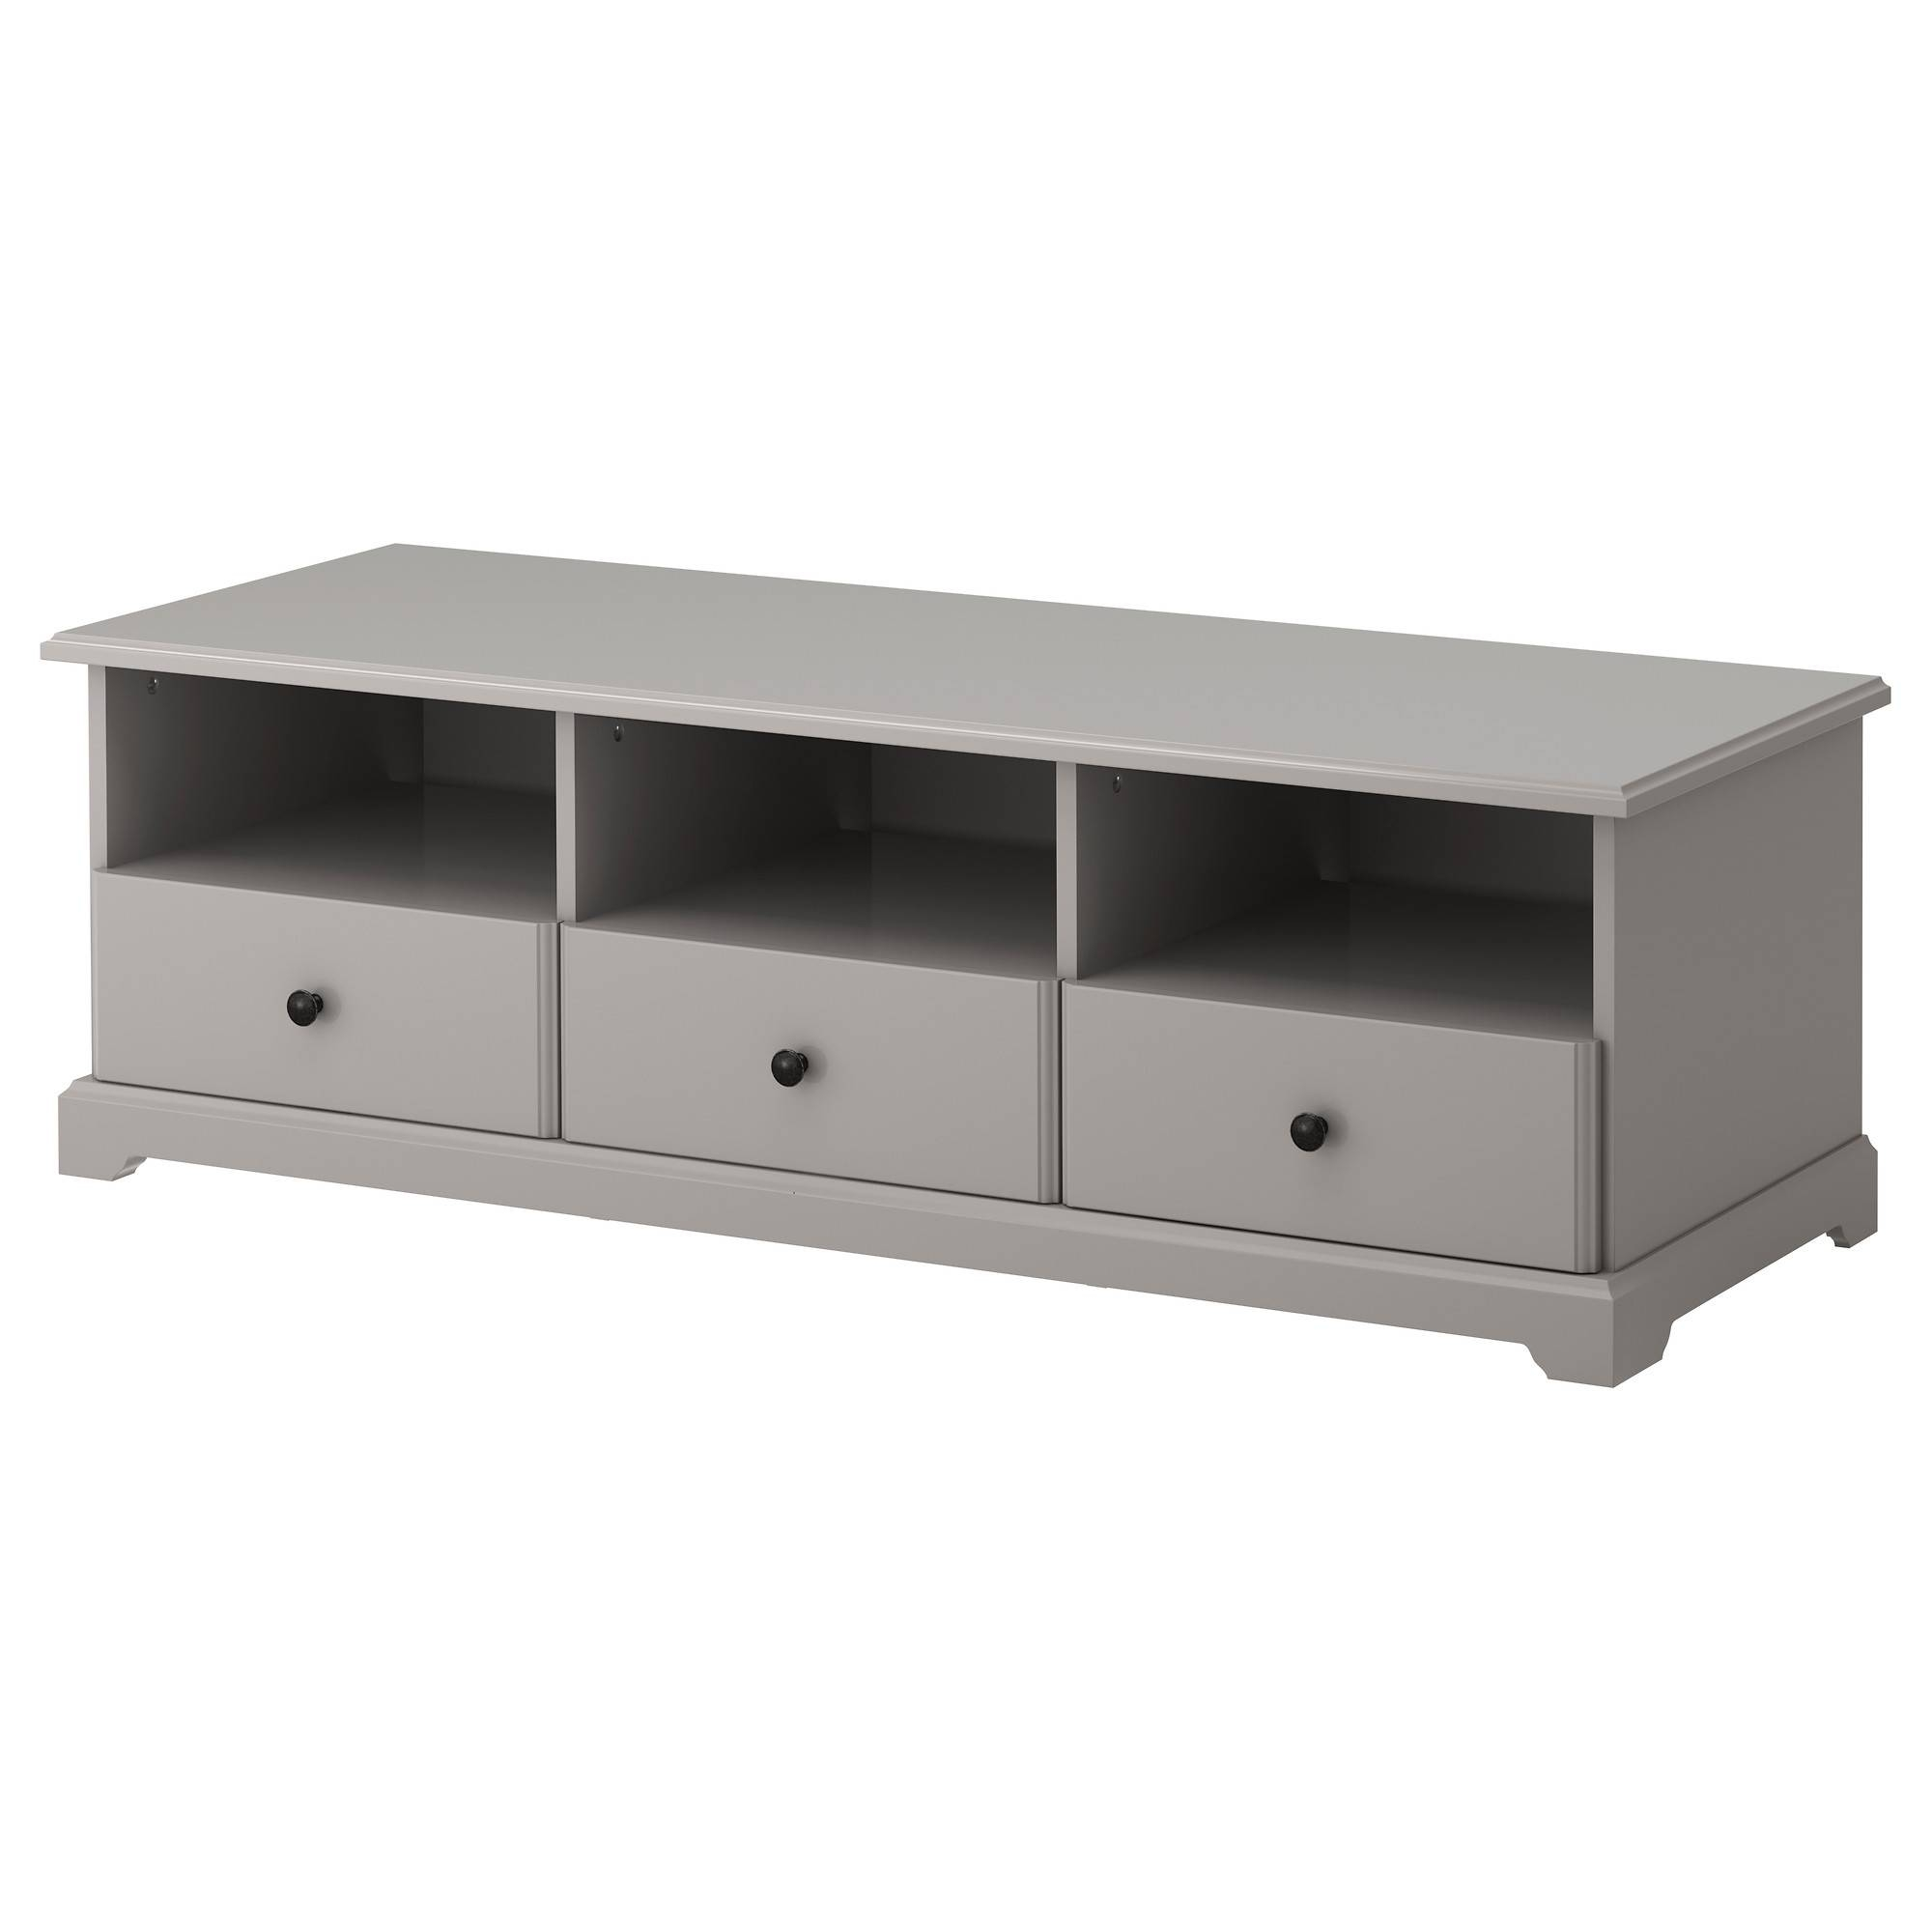 Tv Stands & Tv Units | Ikea in 60 Cm High Tv Stand (Image 14 of 15)